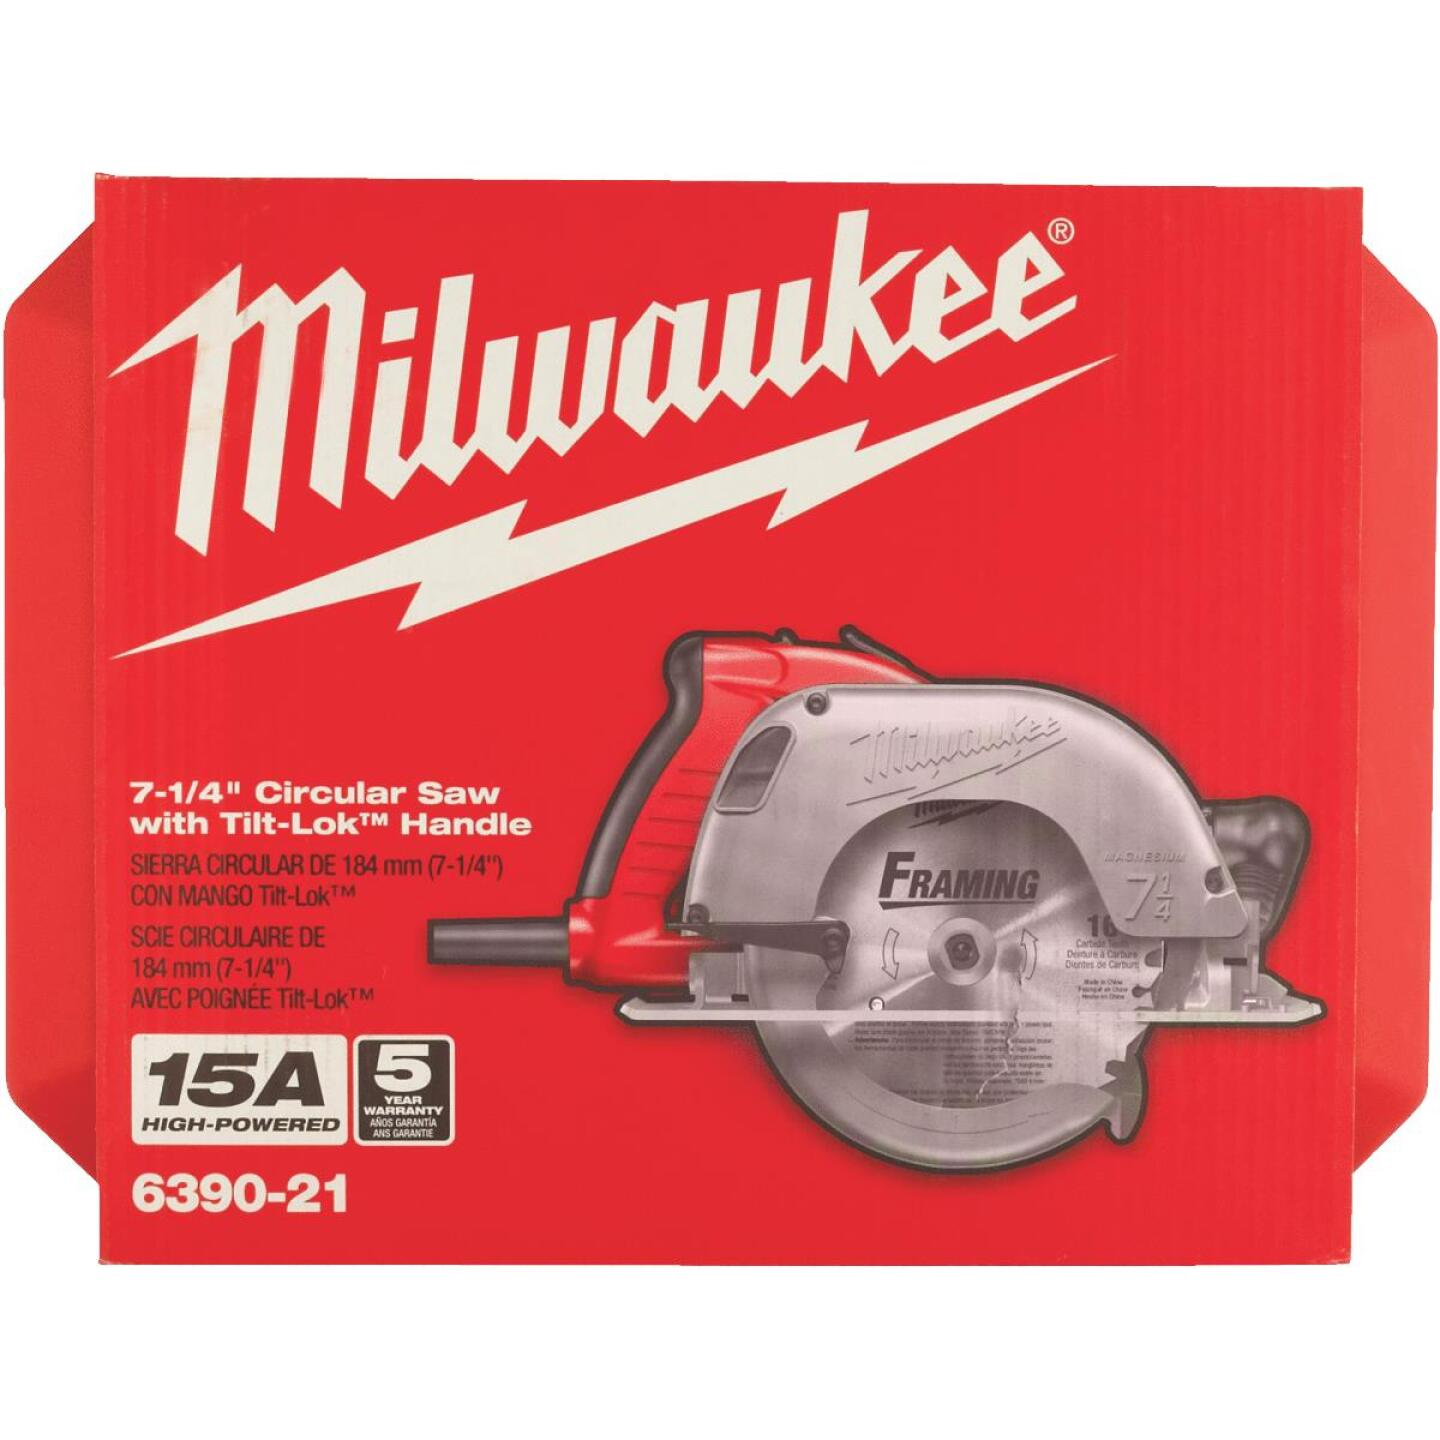 Milwaukee TILT-LOK 7-1/4 In. 15-Amp Circular Saw Image 3